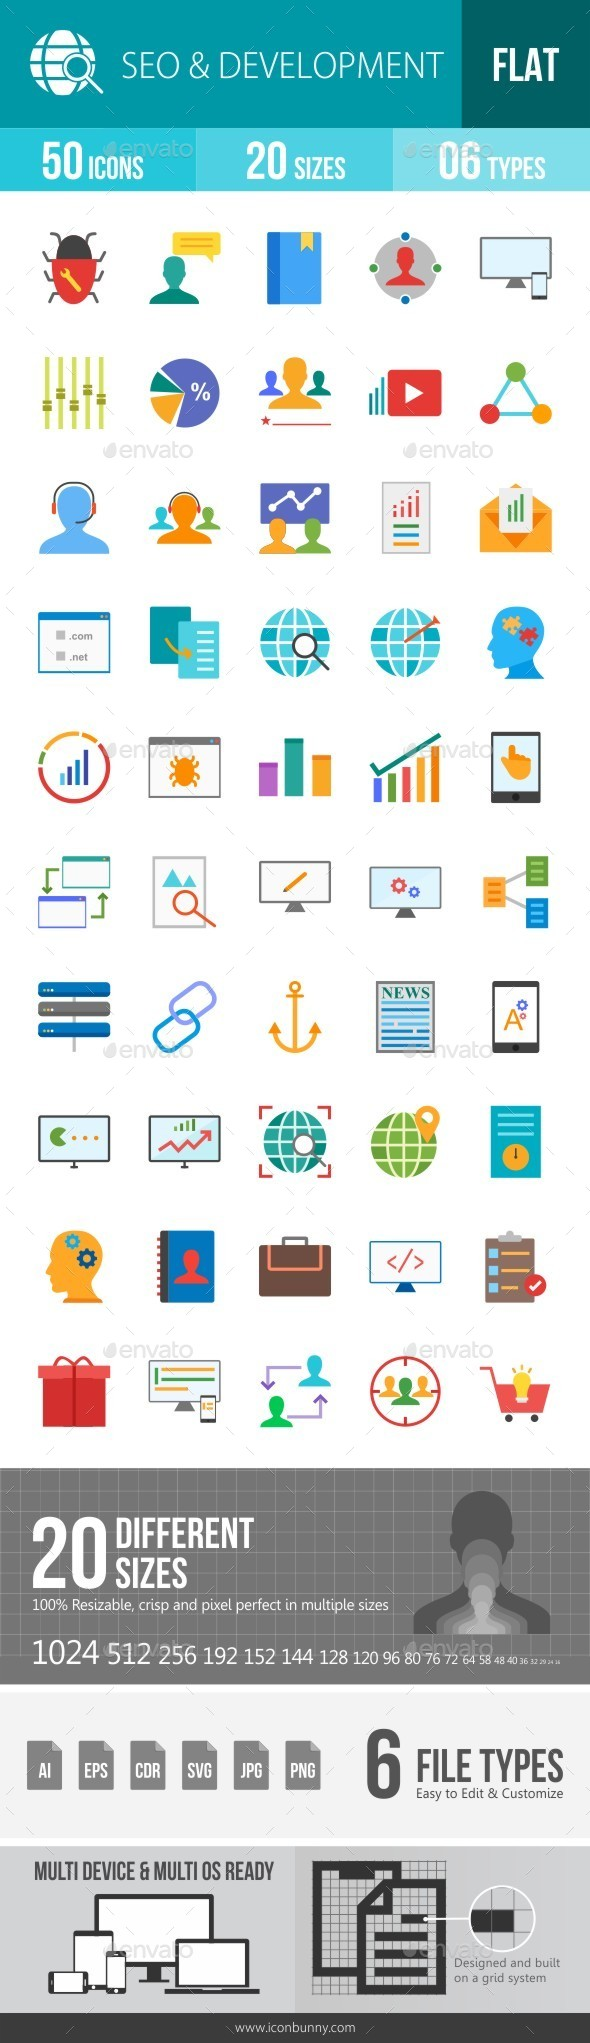 SEO & Development Services Flat Multicolor Icons - Icons